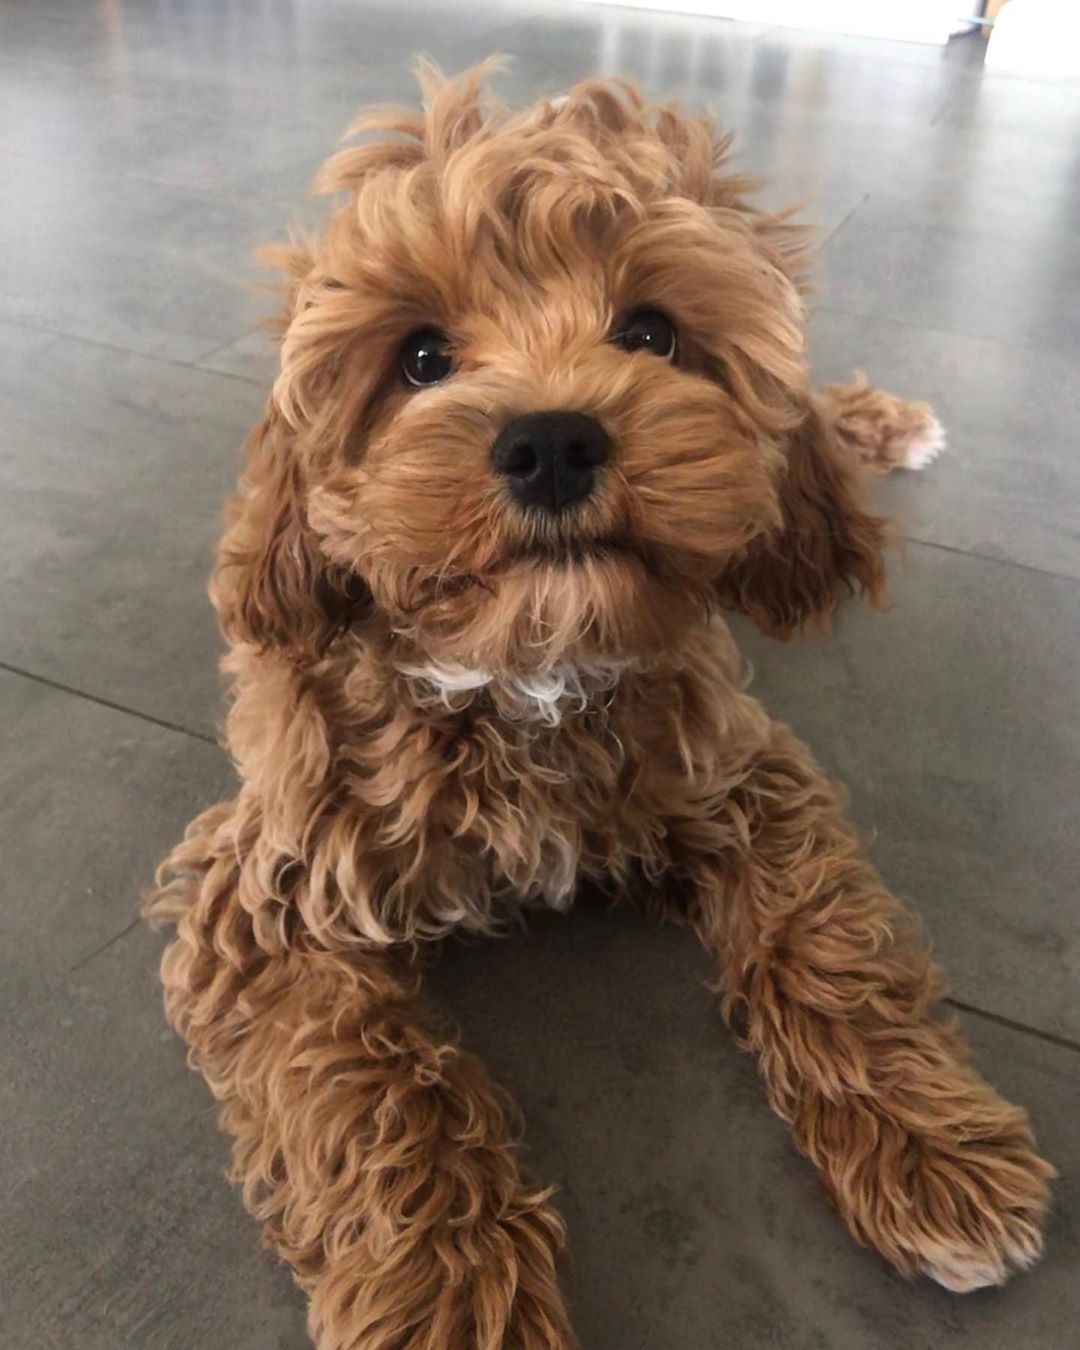 Hypnotising My Parents With My Puppy Stare Look At My Cuteness Now Give Me A Treat Works Every Tim Cute Little Puppies Cute Dogs And Puppies Cavapoo Puppies